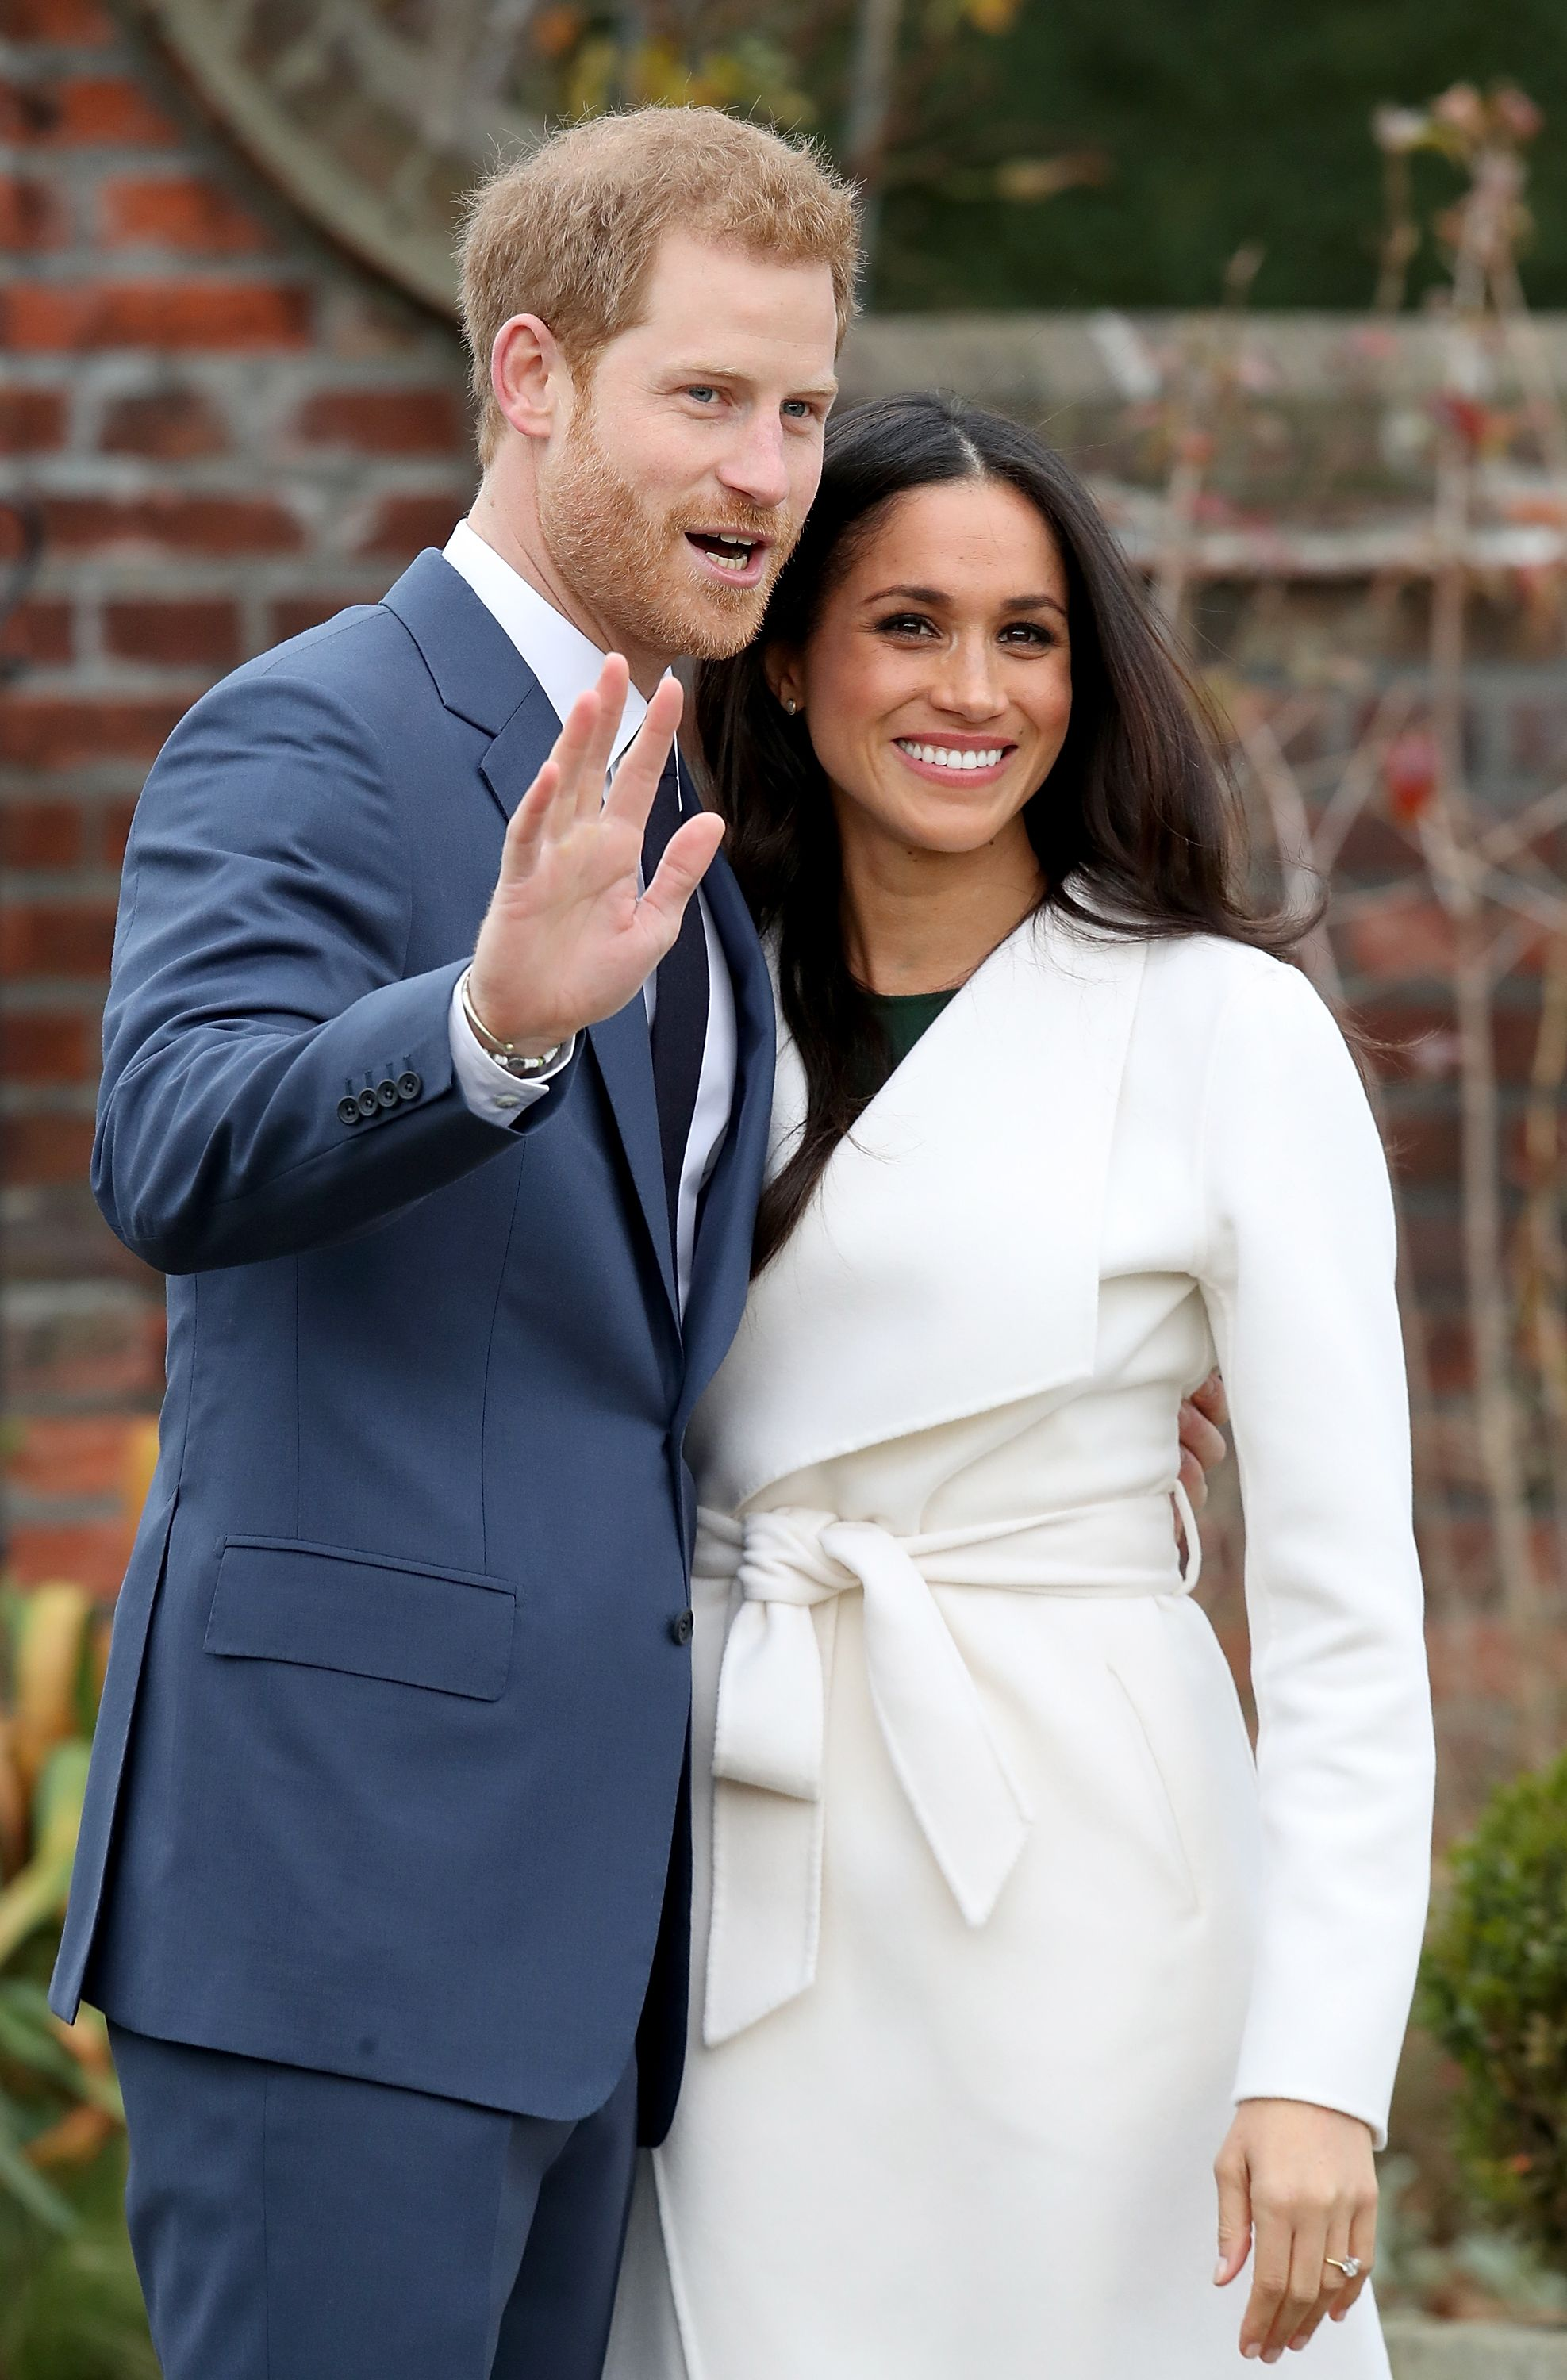 Prince Harry and Meghan Markle announce their engagement on November 27, 2017, in London, England.   Source: Getty Images